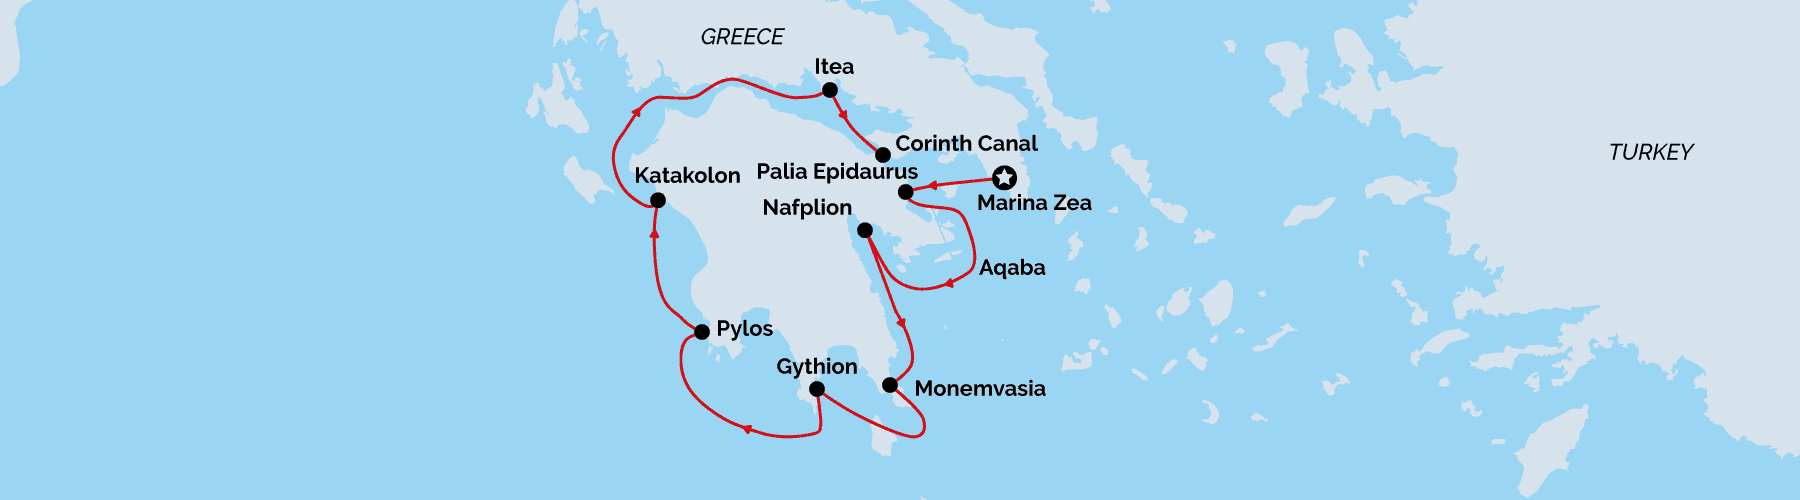 Map Greece Antiquity